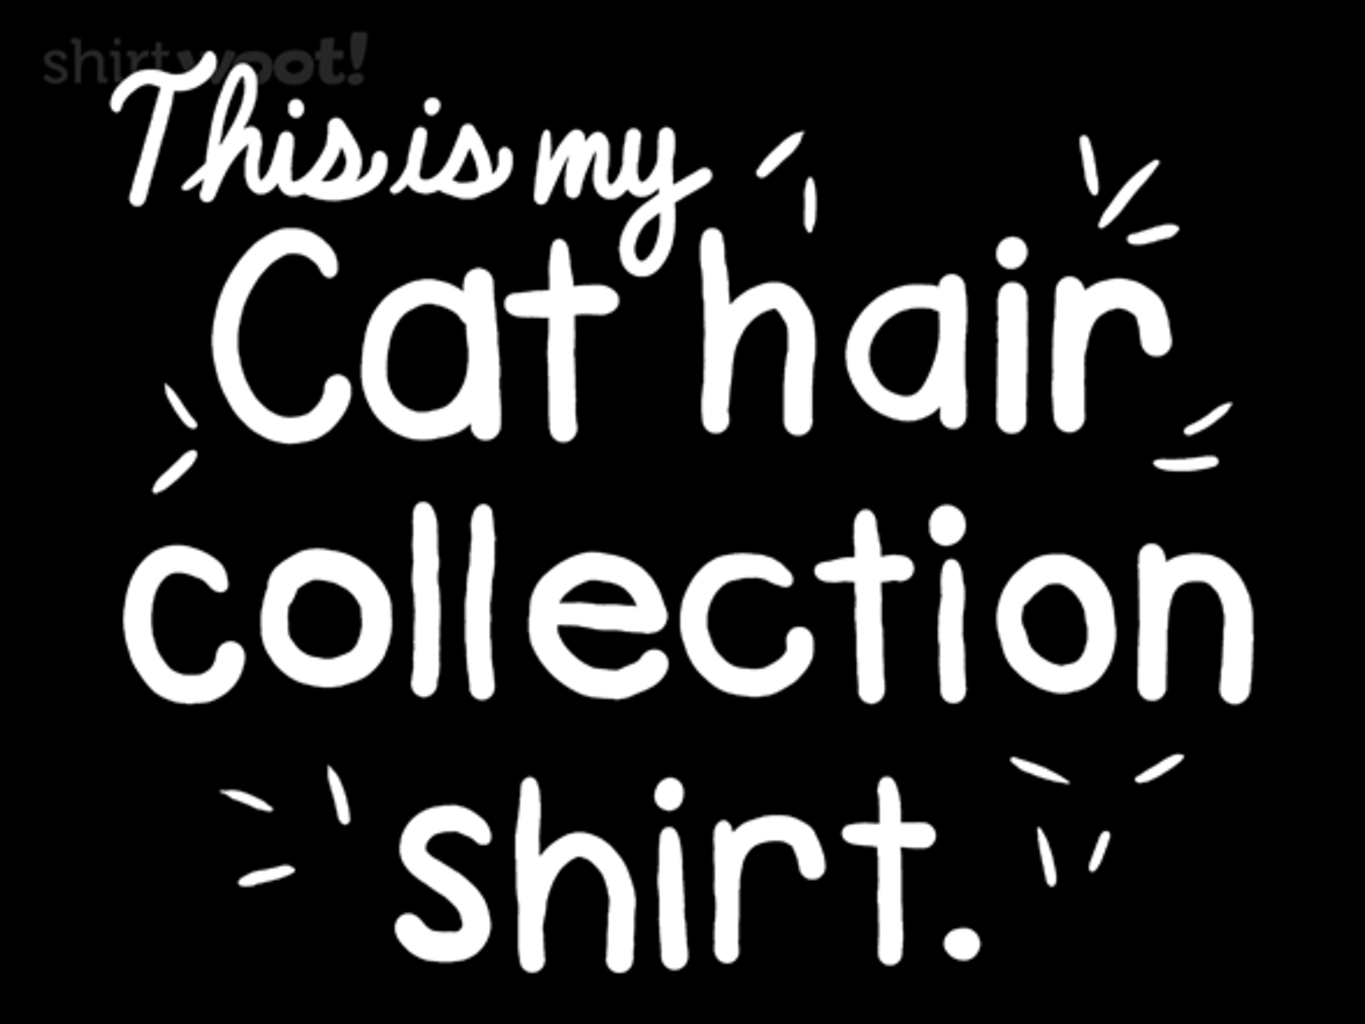 Woot!: Cat Hair Collector